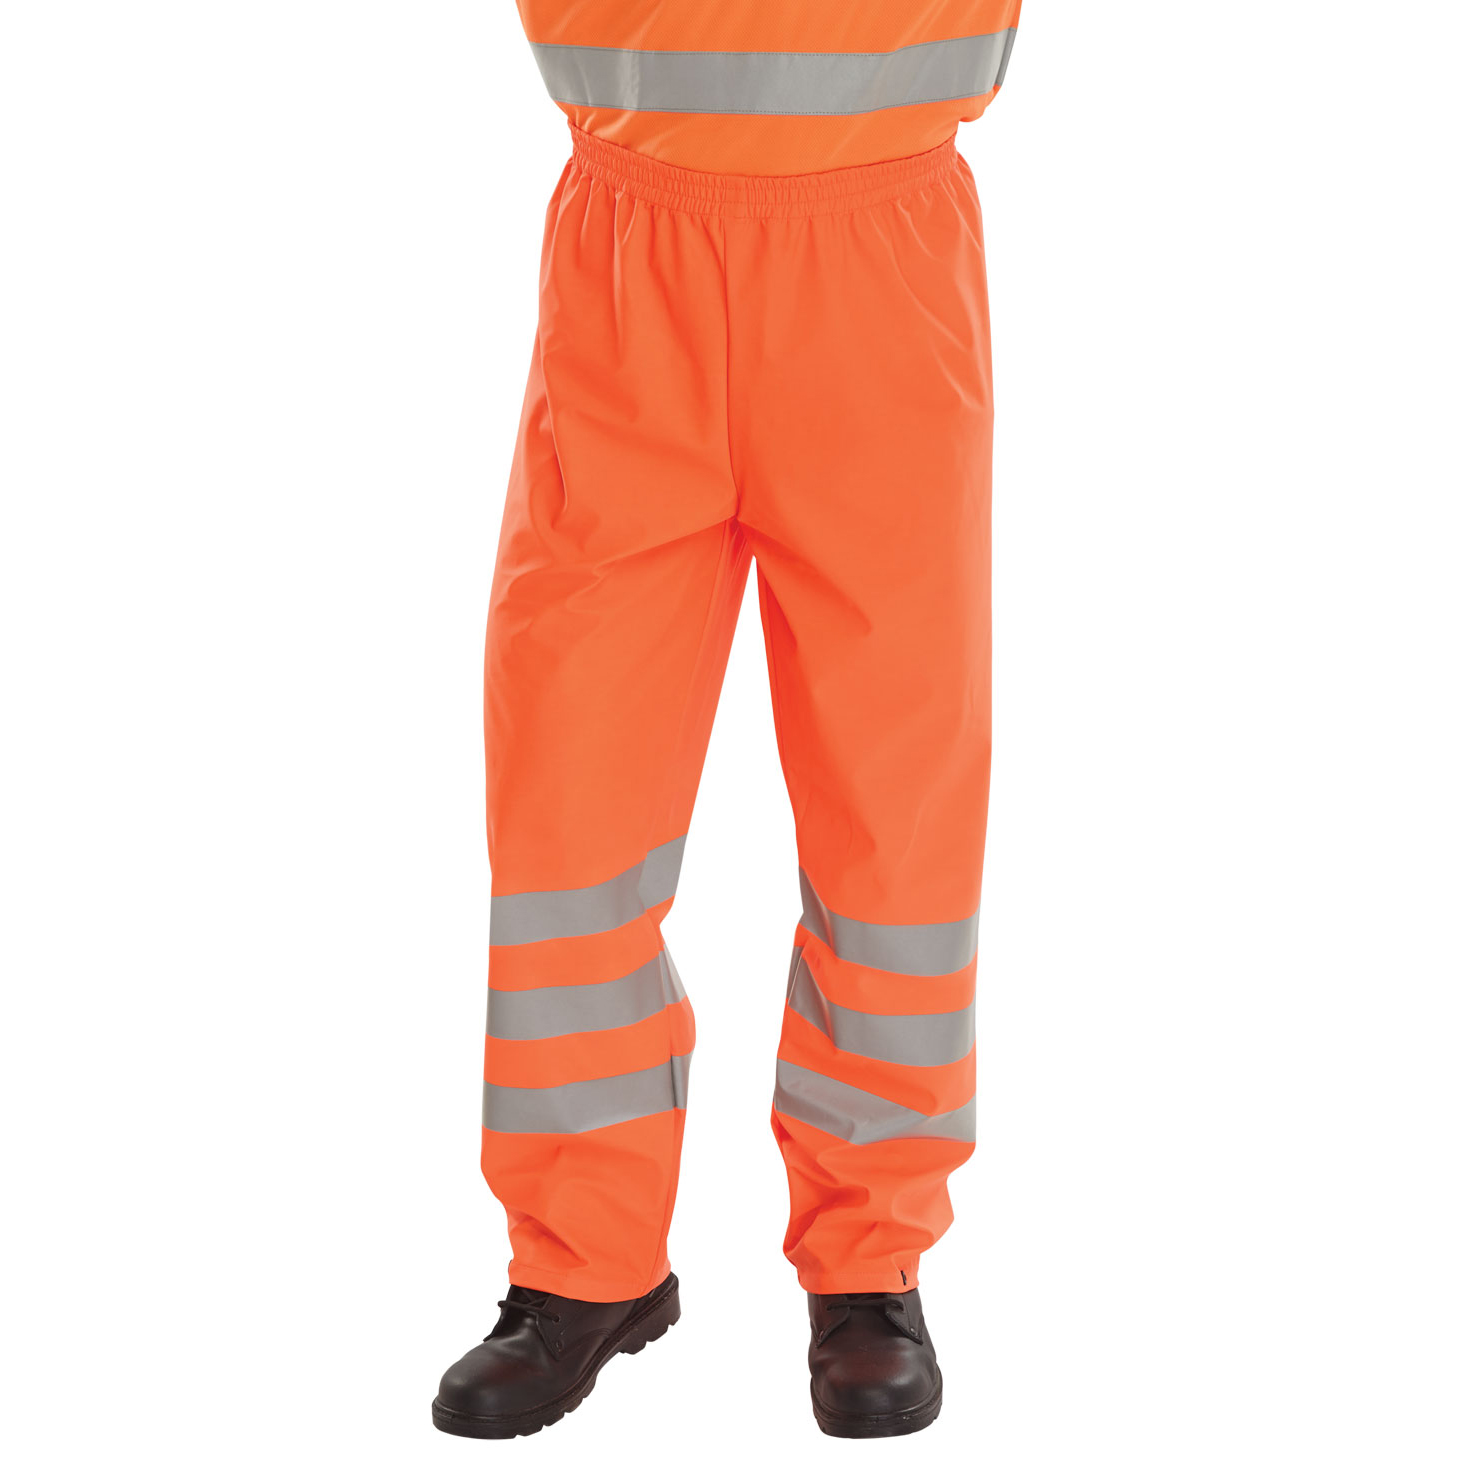 BSeen Over Trousers PU Hi-Vis Reflective 2XL Orange Ref PUT471ORXXL *Up to 3 Day Leadtime*